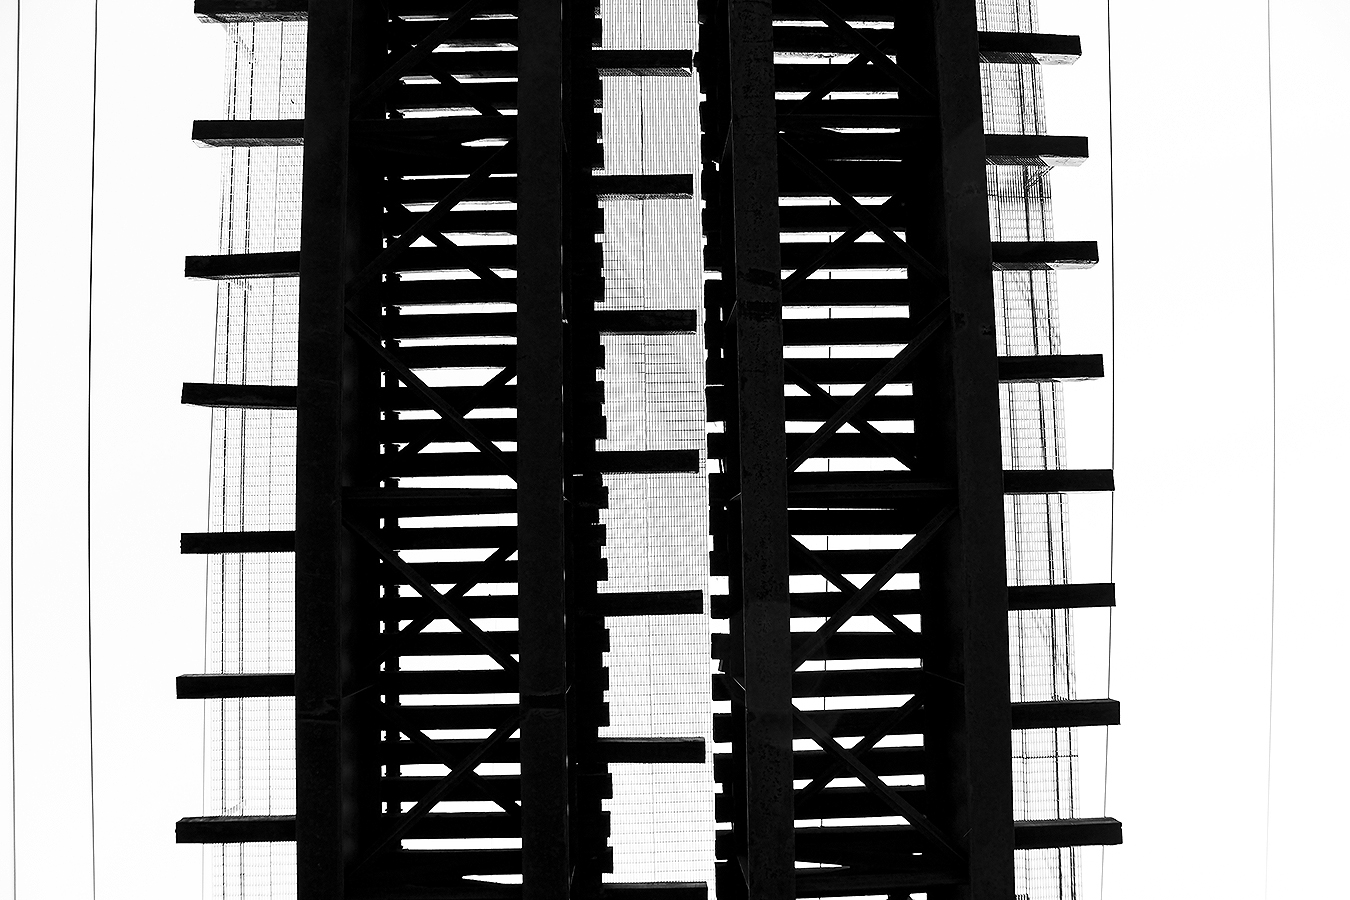 Janelle_Tong_Photography_Tony_Ward_Studio_Individual_Project_UPenn_Penn_Park_Bridges_Railroad_Tracks_Below_Two_Paths_Diverged_Black_and_White